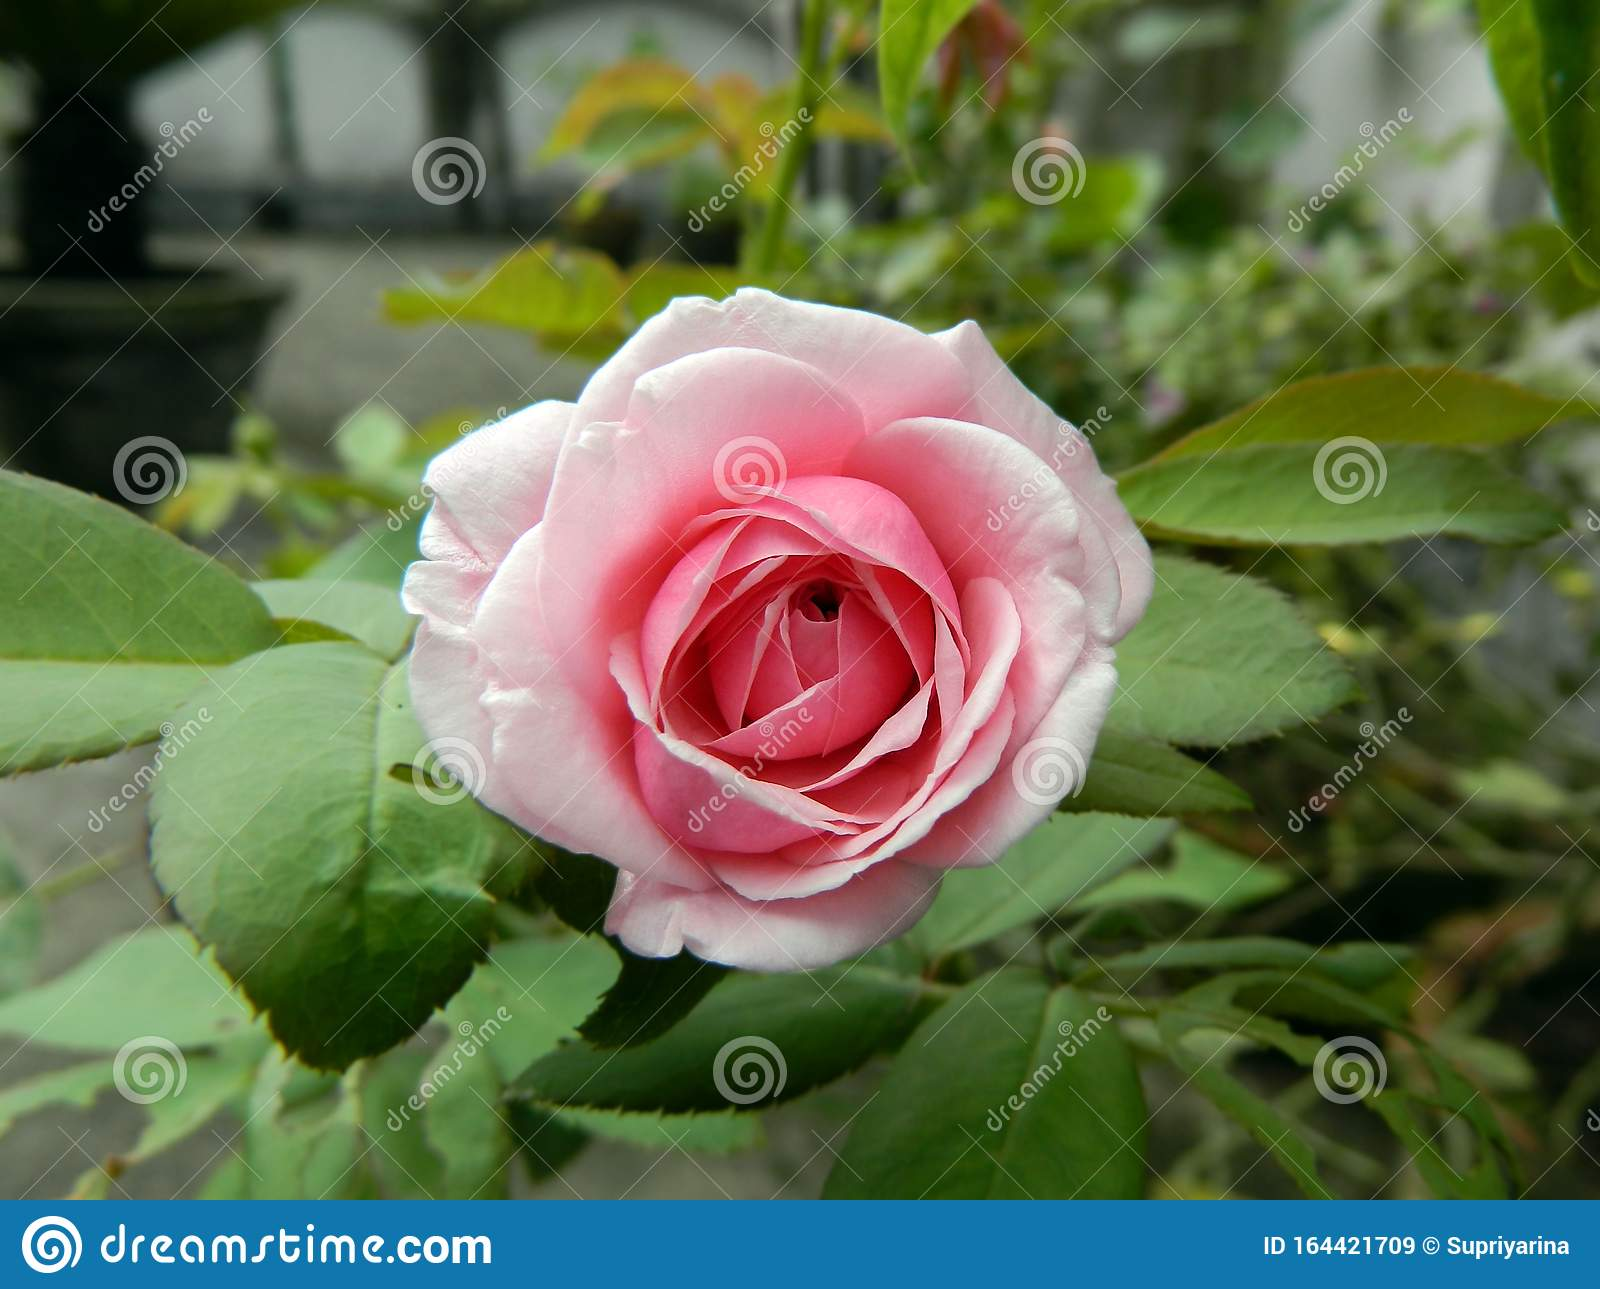 Rose Is The Most Beautiful Flower And Adored By Everyone In The World Stock Image Image Of Green Grow 164421709,2 Bedroom Apartments For Rent In Brooklyn Under 1400